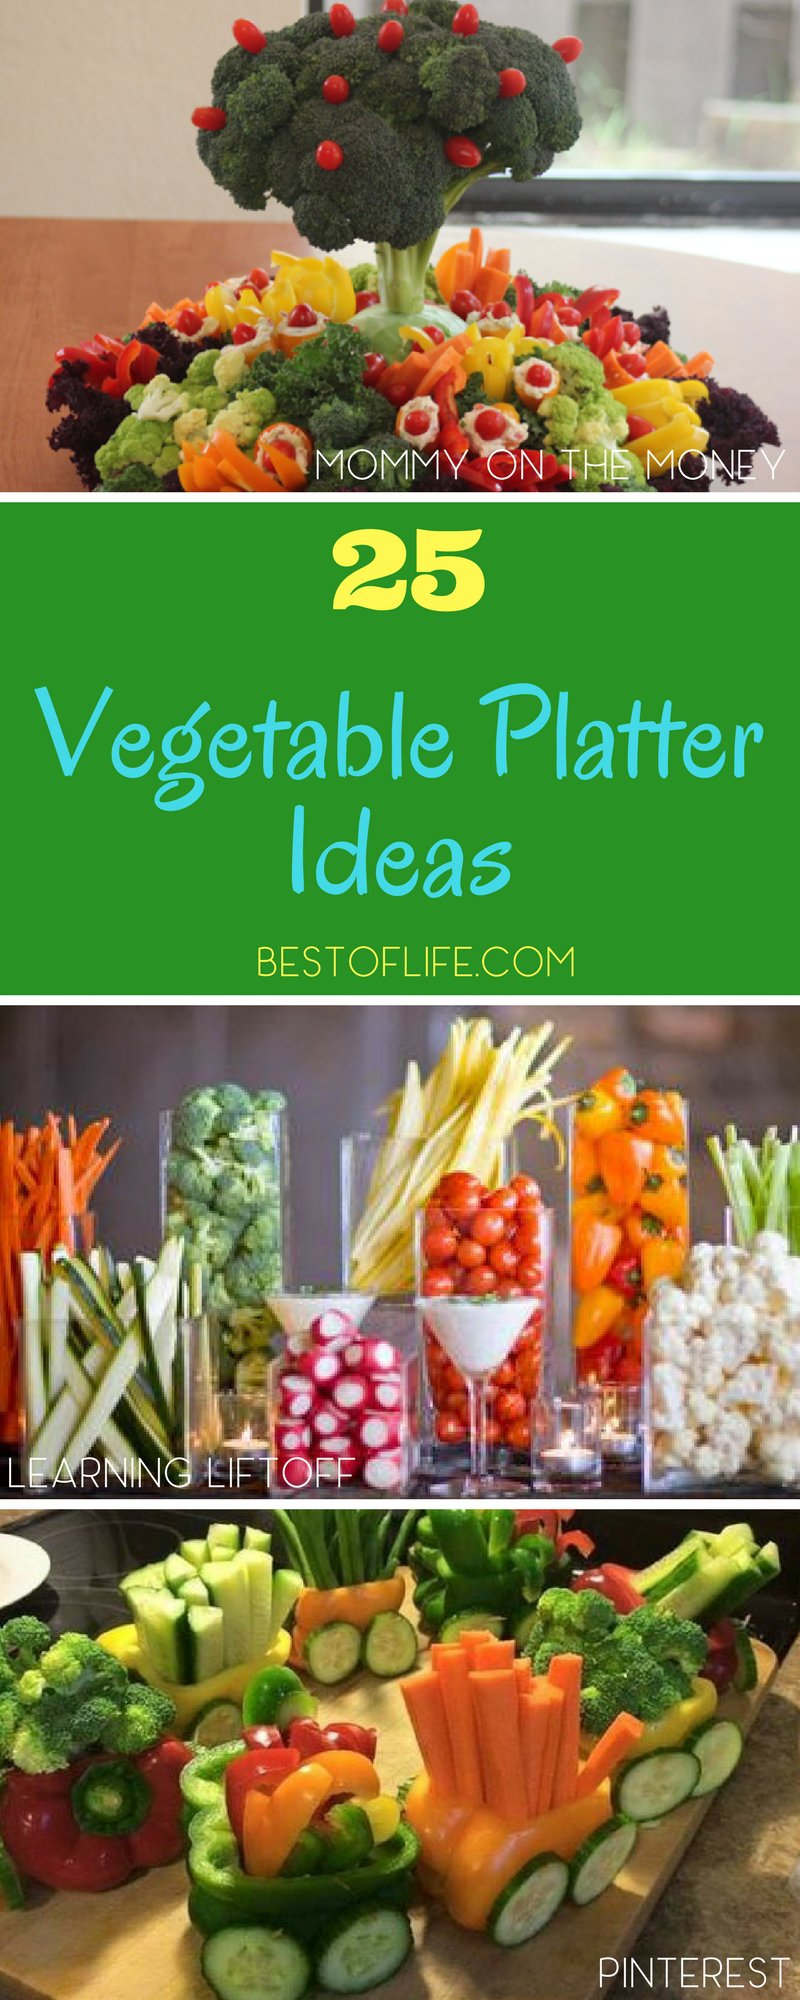 Whether entertaining a few friends, your family, or a crowd, a vegetable platter is a must have party food! These vegetable platter ideas will help you display them perfectly for the occasion. Vegetable Platter Display | Vegetable Platter Guide | Entertaining Tips | Party Food | Party Ideas | Party Food Ideas for a Crowd | Easy Party Food Ideas via @thebestoflife